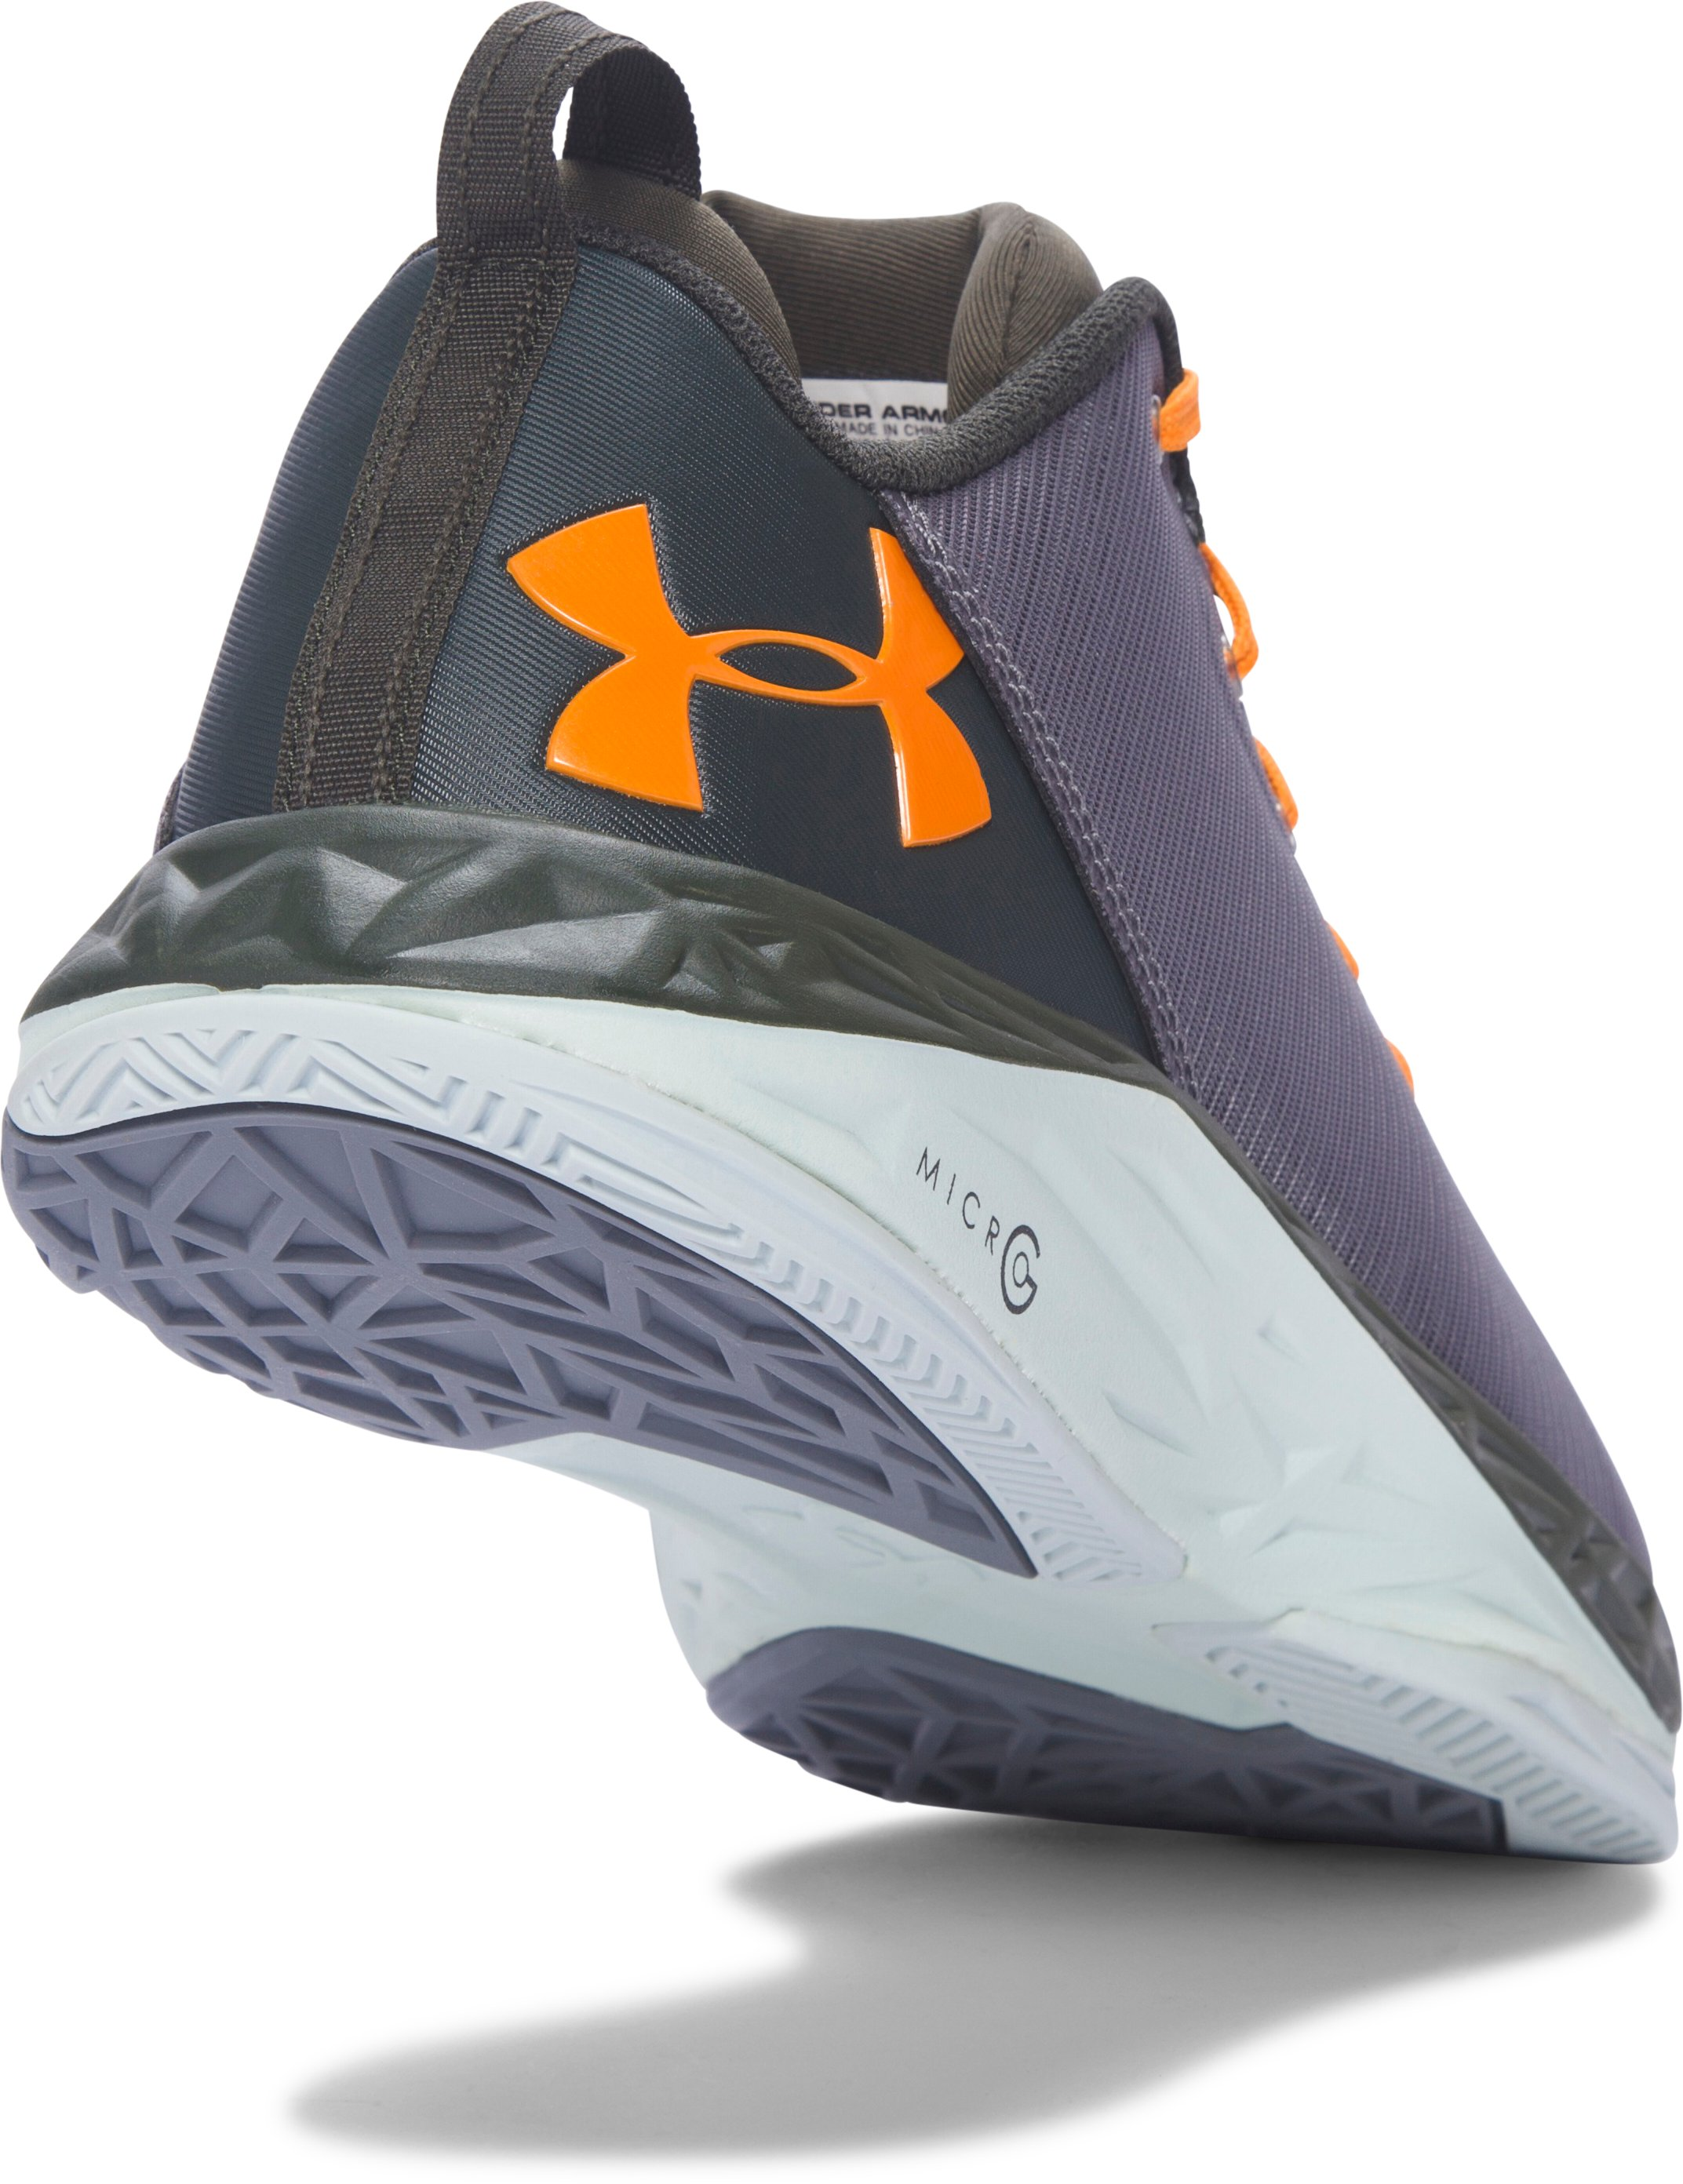 Men's UA Fireshot Low Basketball Shoes, Graphite, undefined